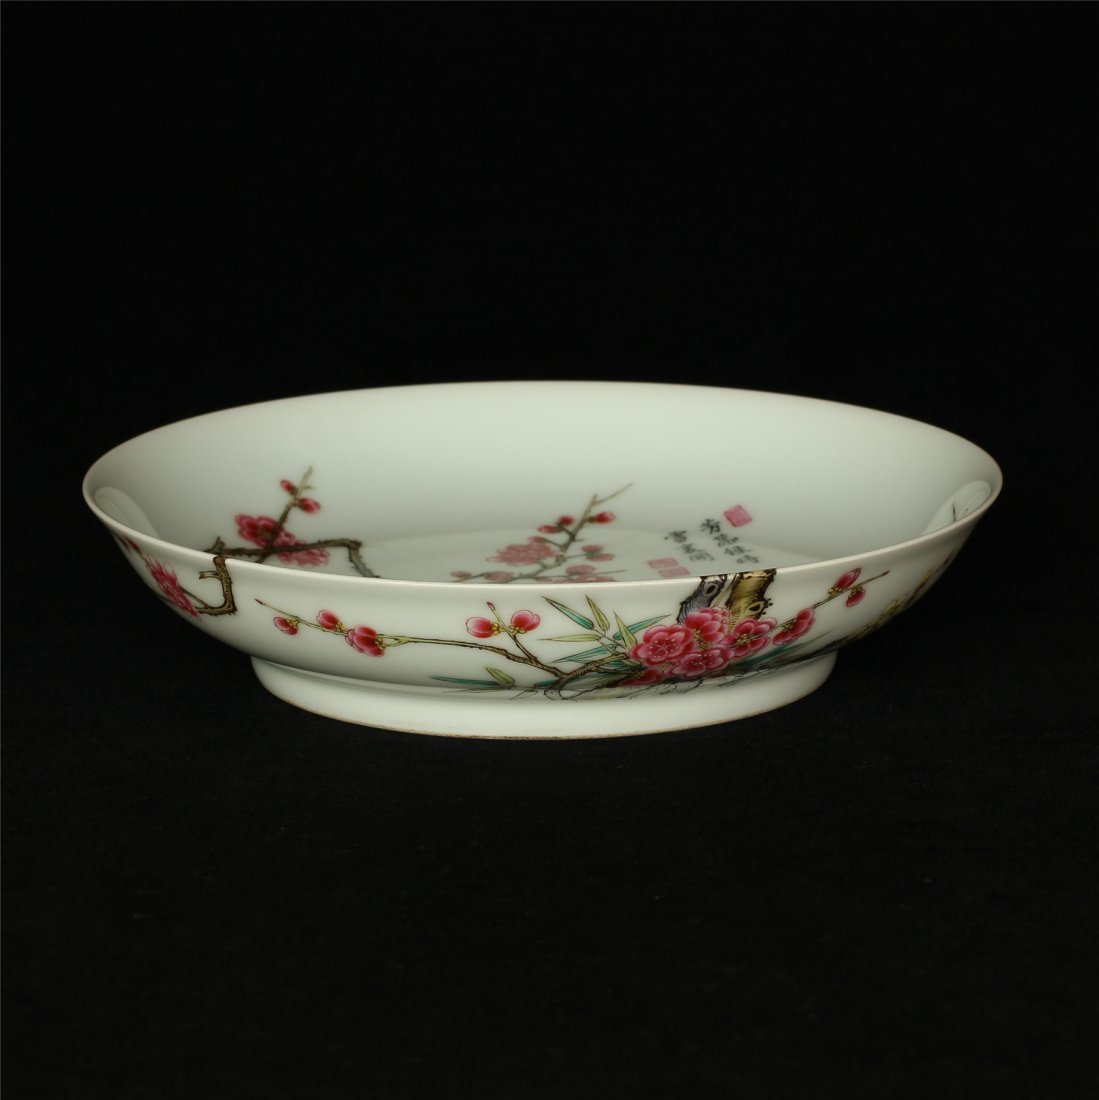 Famille rose porcelain plate of Qing Dynasty YongZheng - 6